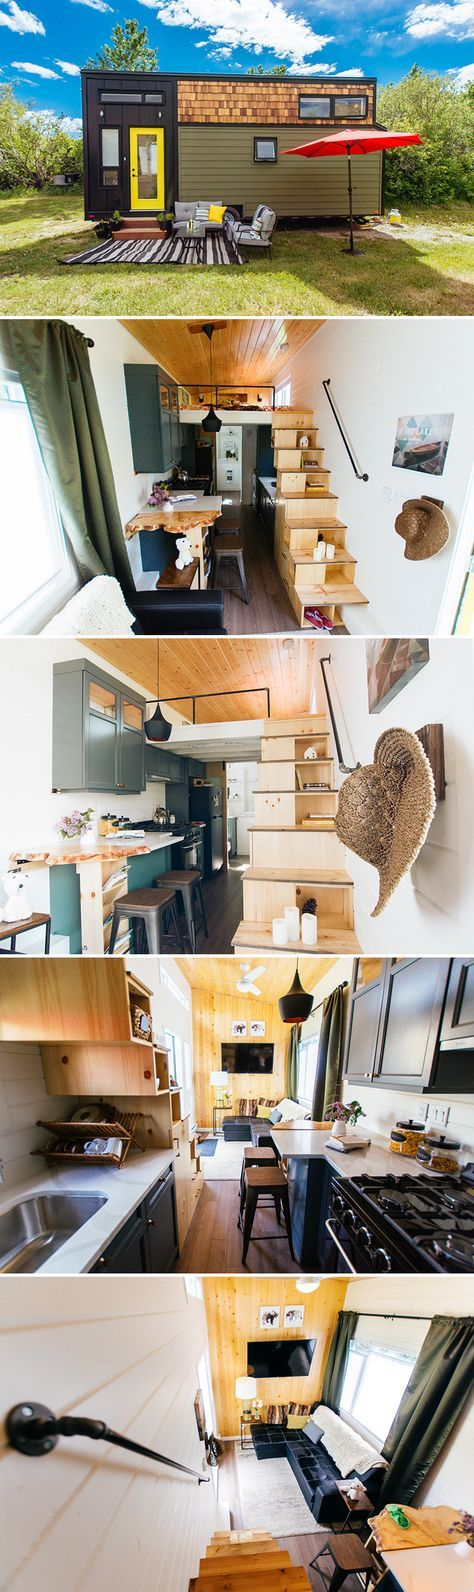 The 24-foot Not So Lonely Wanderer was built by Canadian builder Teacup Tiny Homes and has a galley kitchen, king bedroom loft, and large bathroom.